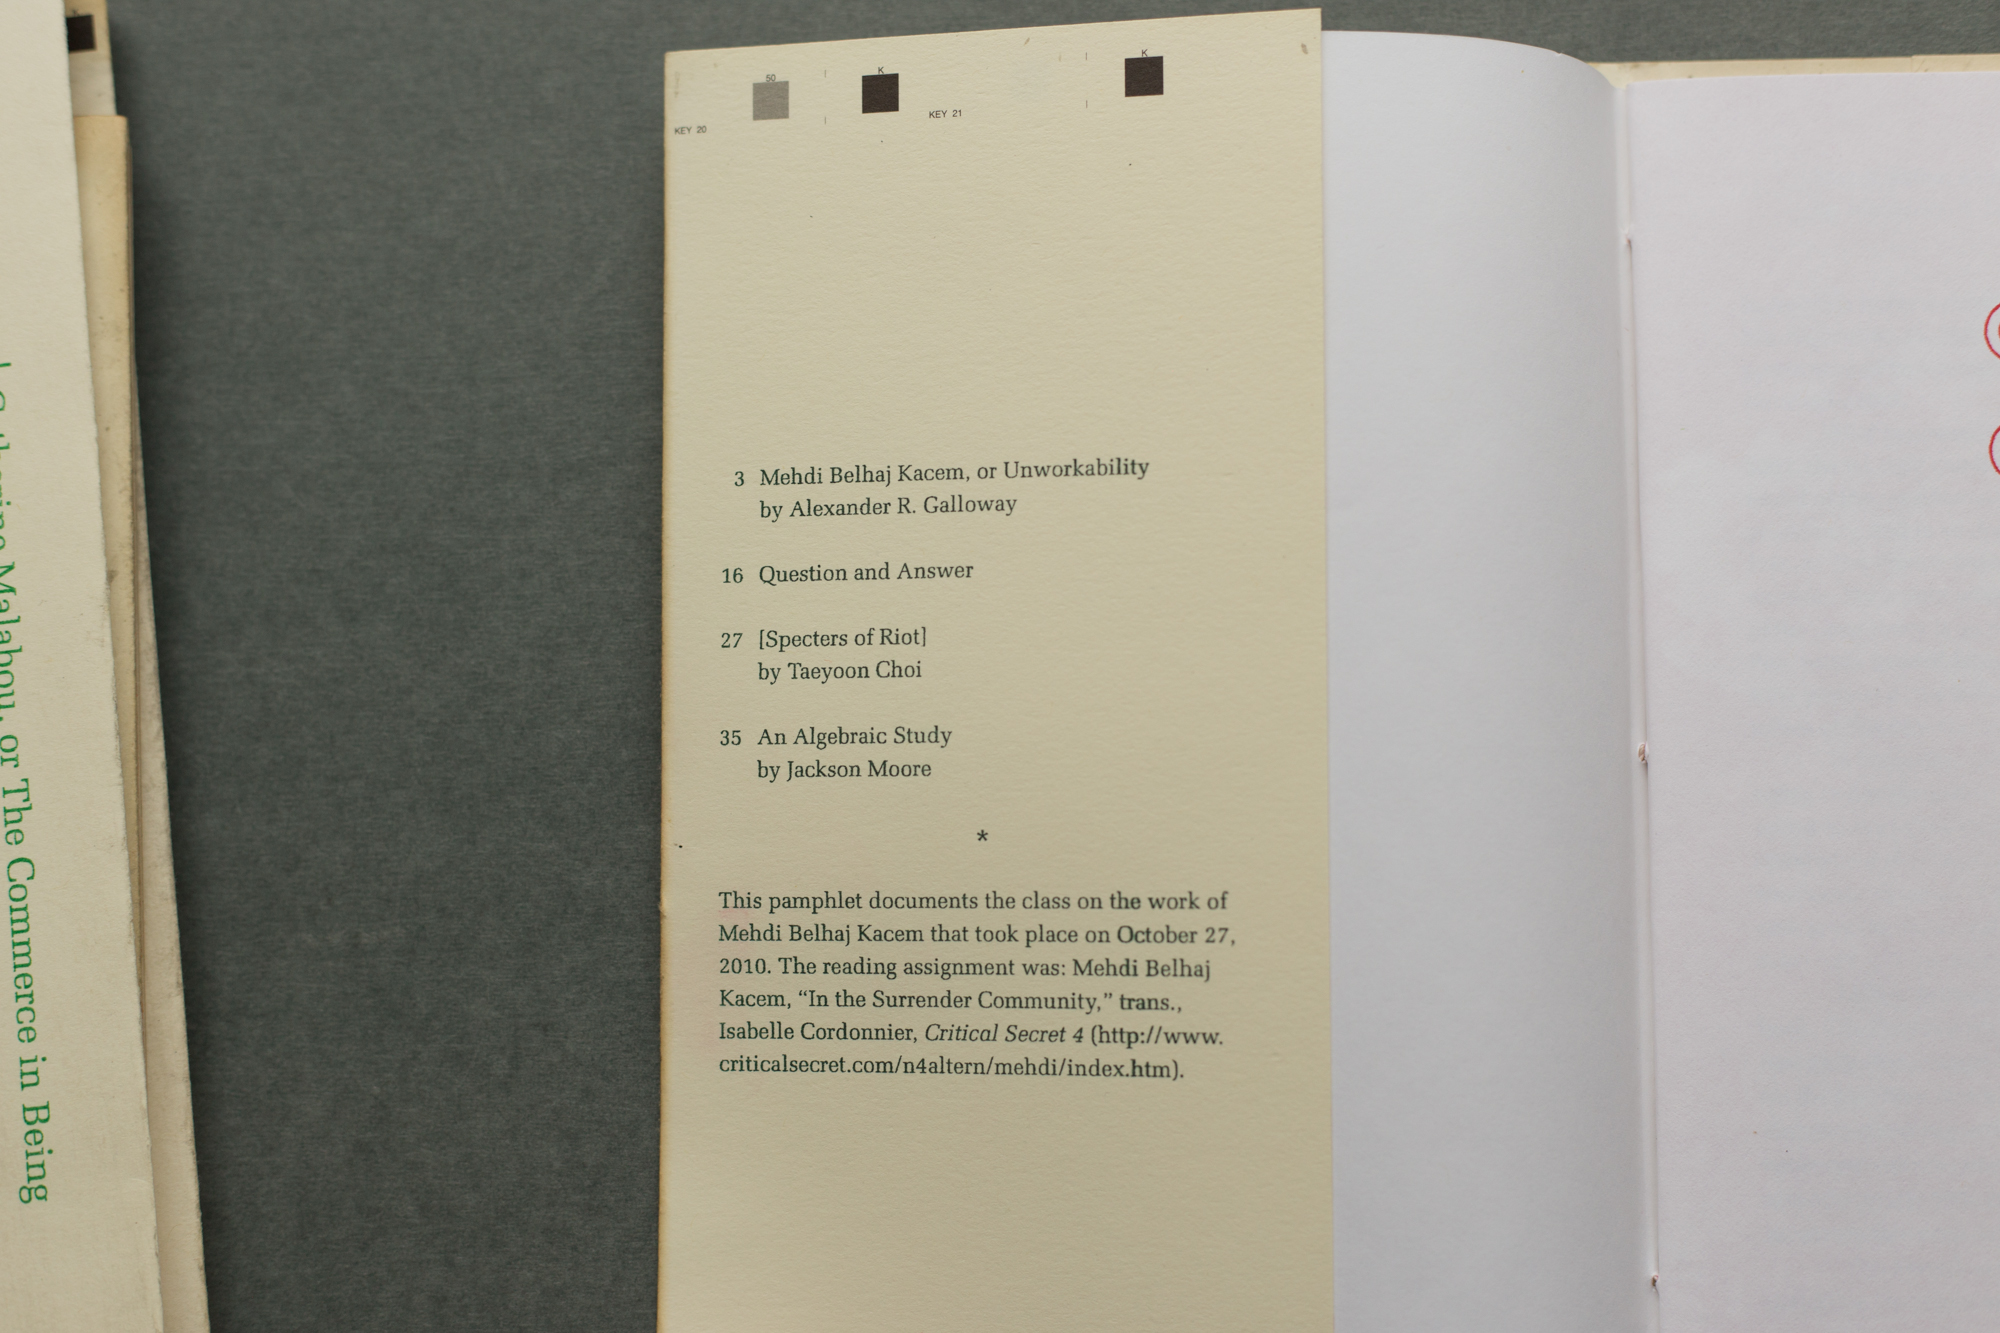 I Contributed To French Theory Today, A Zine By Alexander R Galloway In  2010 I Was A Steeringmittee Member Of The Public School New York When  We